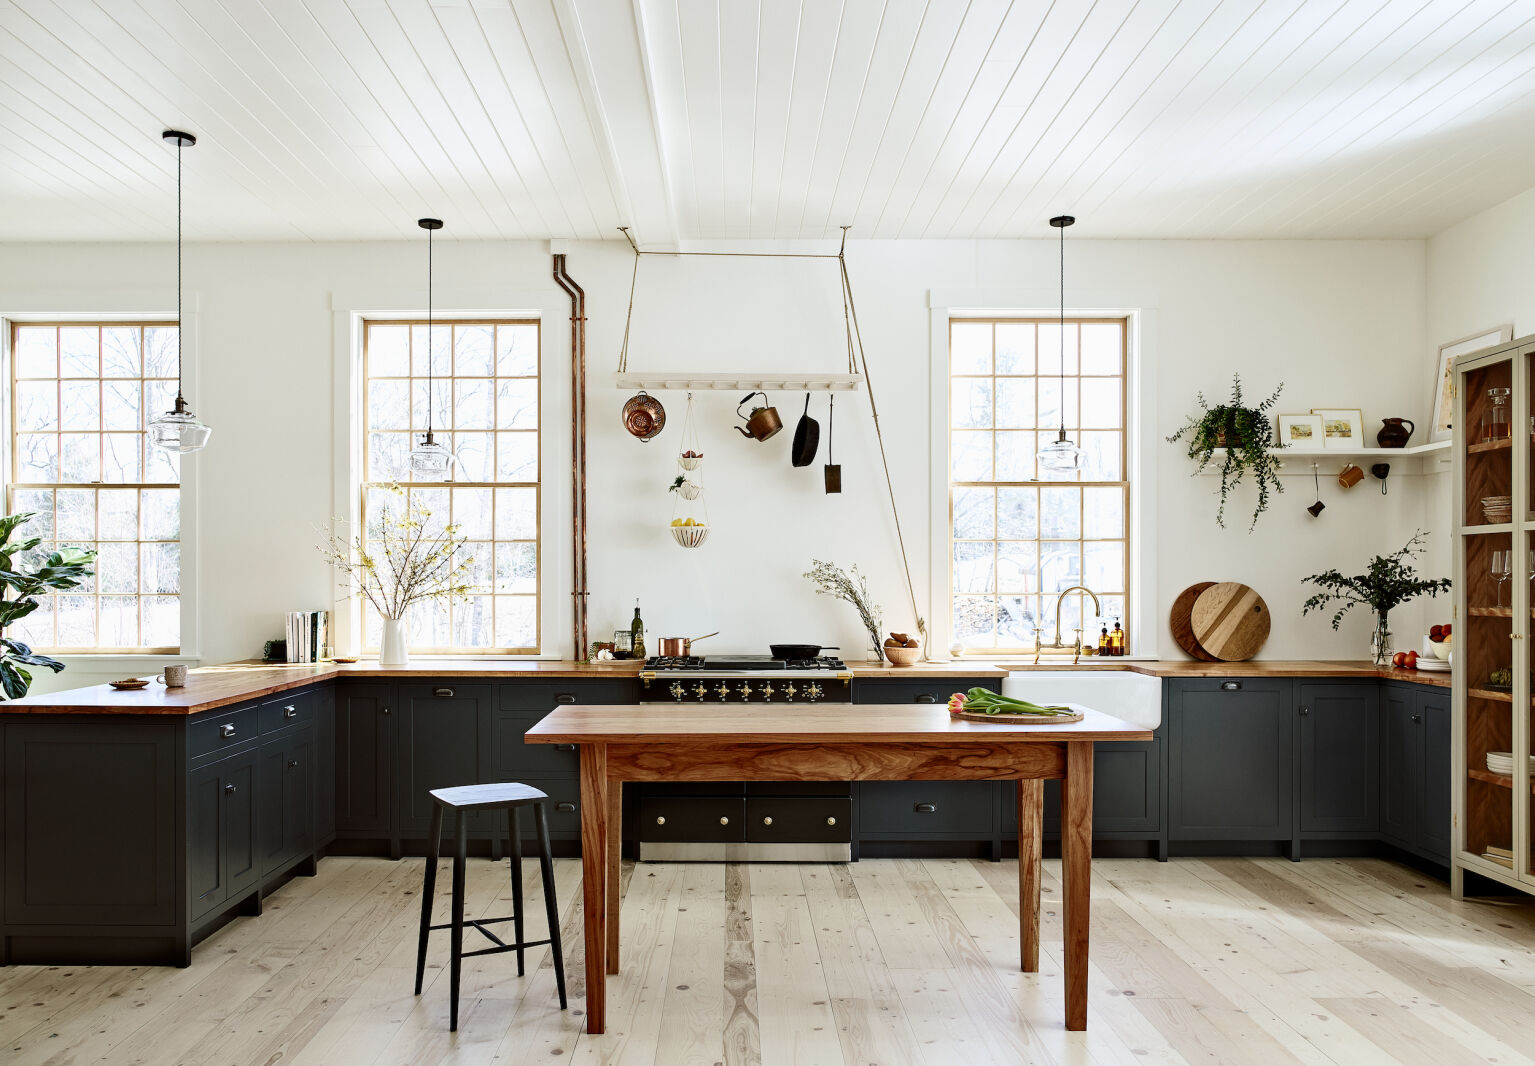 Kitchen of the Week: Rethinking Perfection in a Cabinetmaker's Own Kitchen in Maine